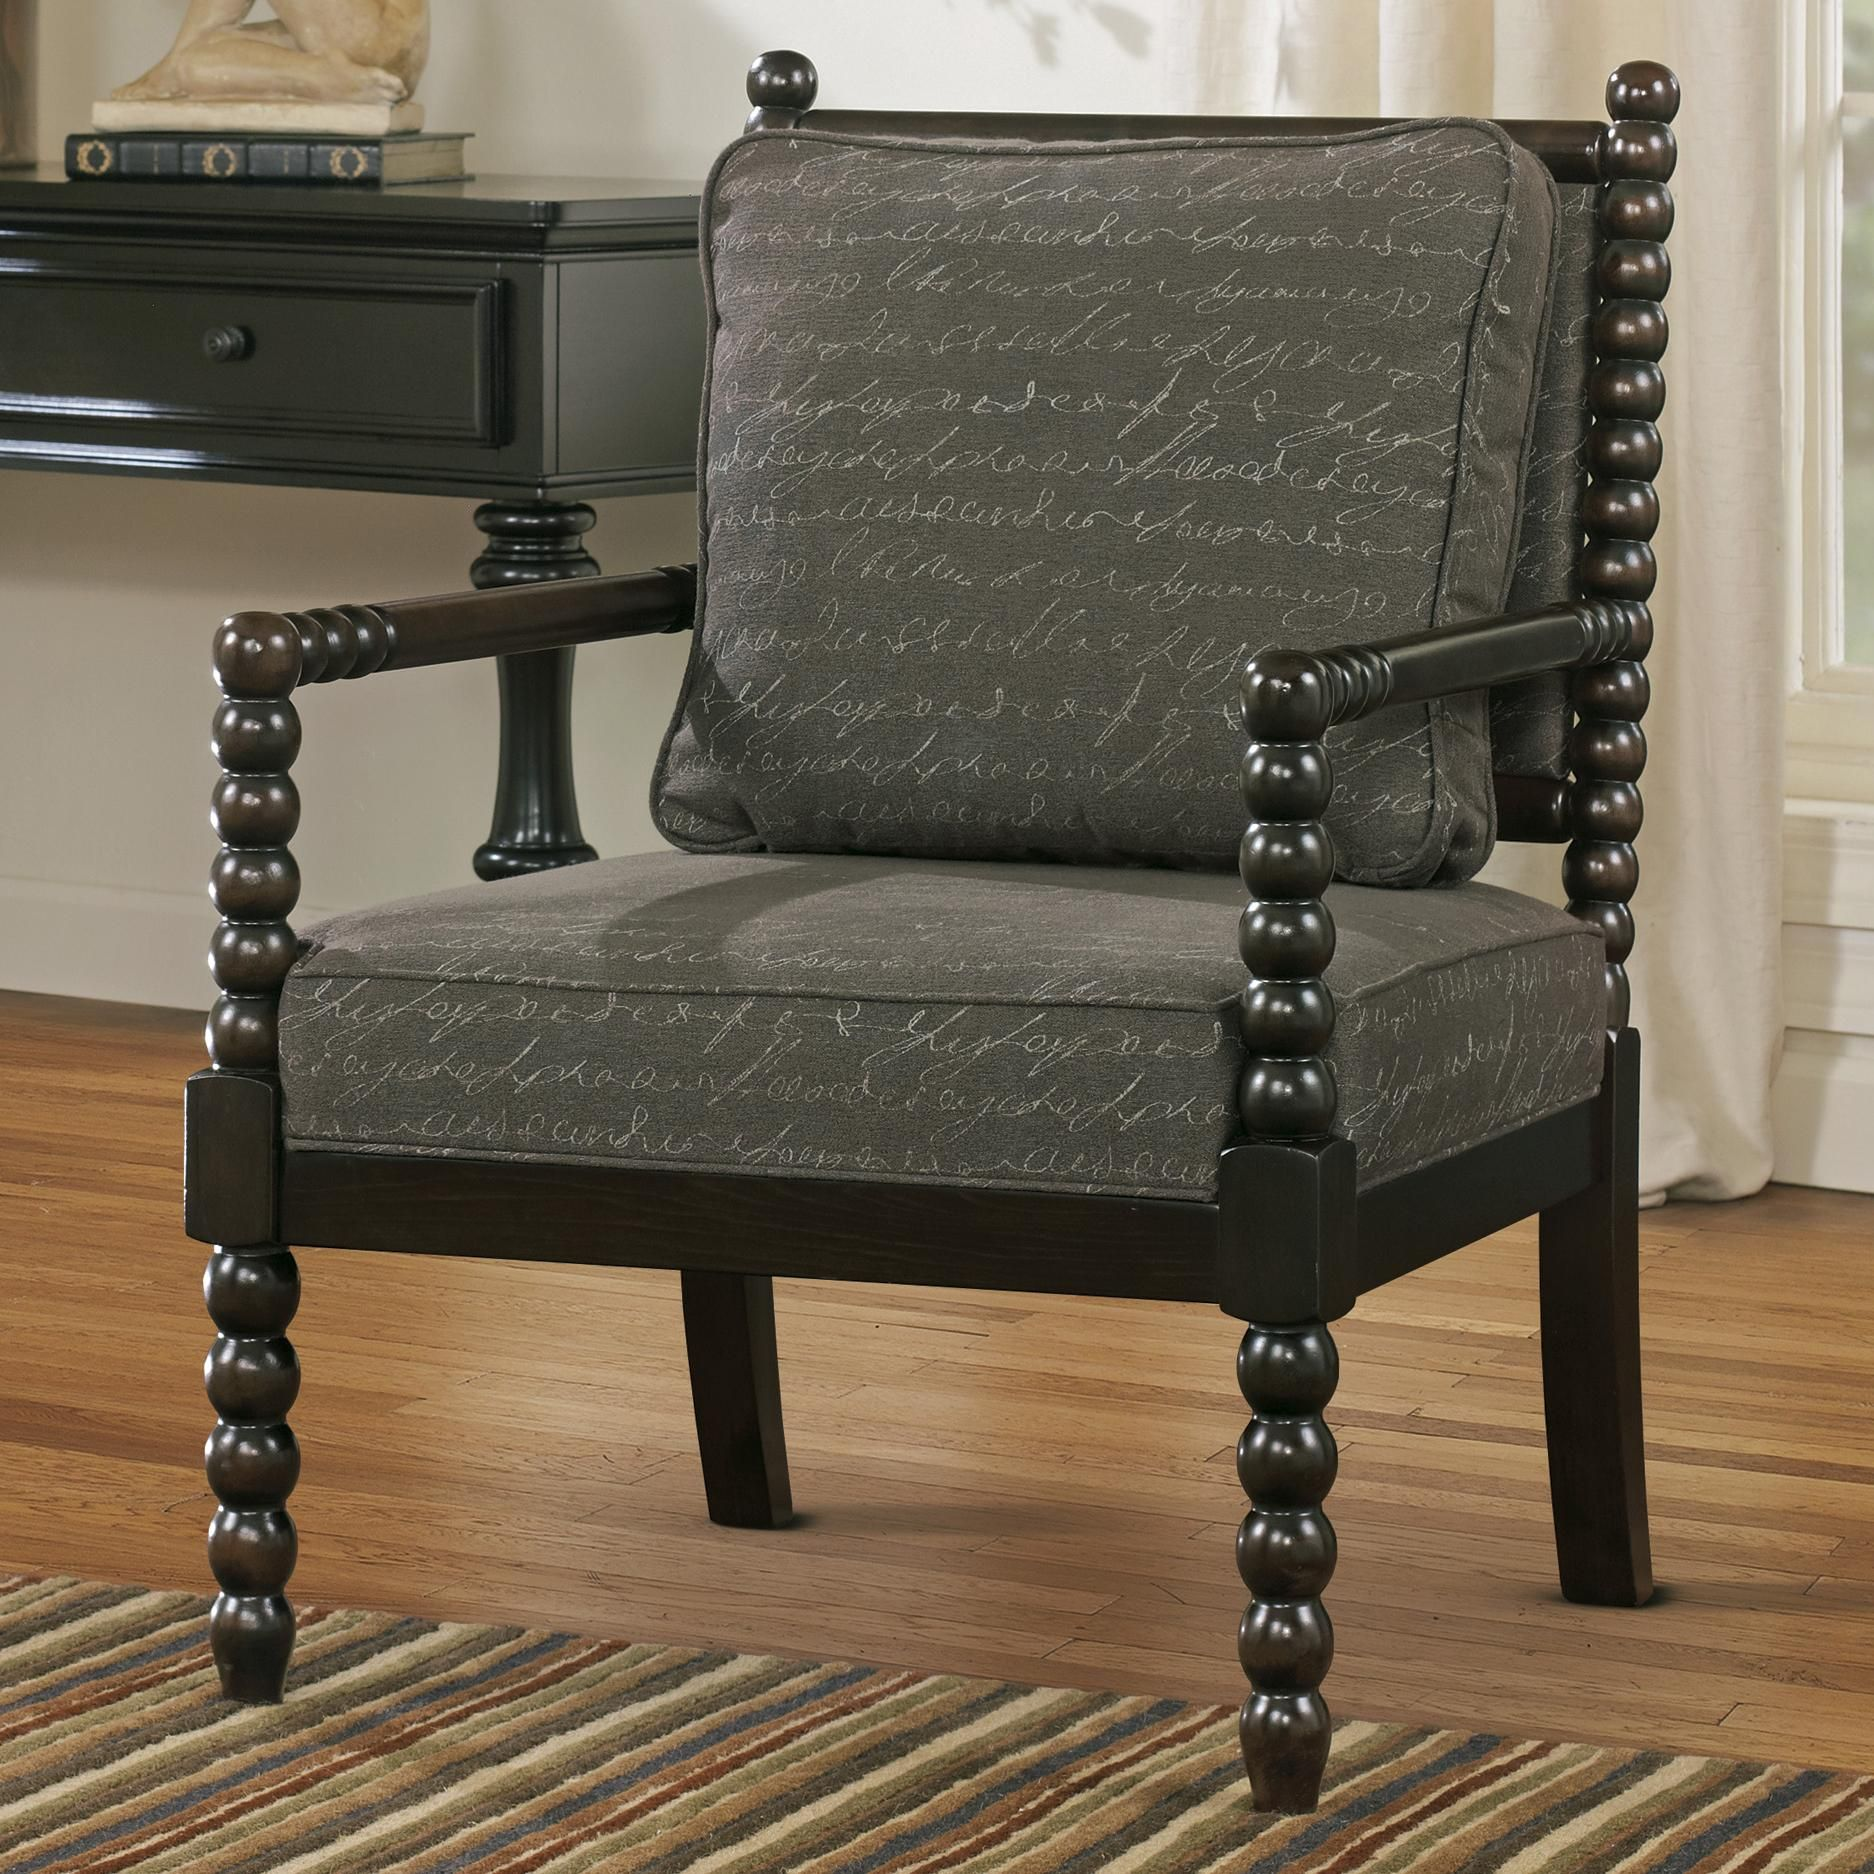 Accent chair in script fabric with spool turned legs and arms